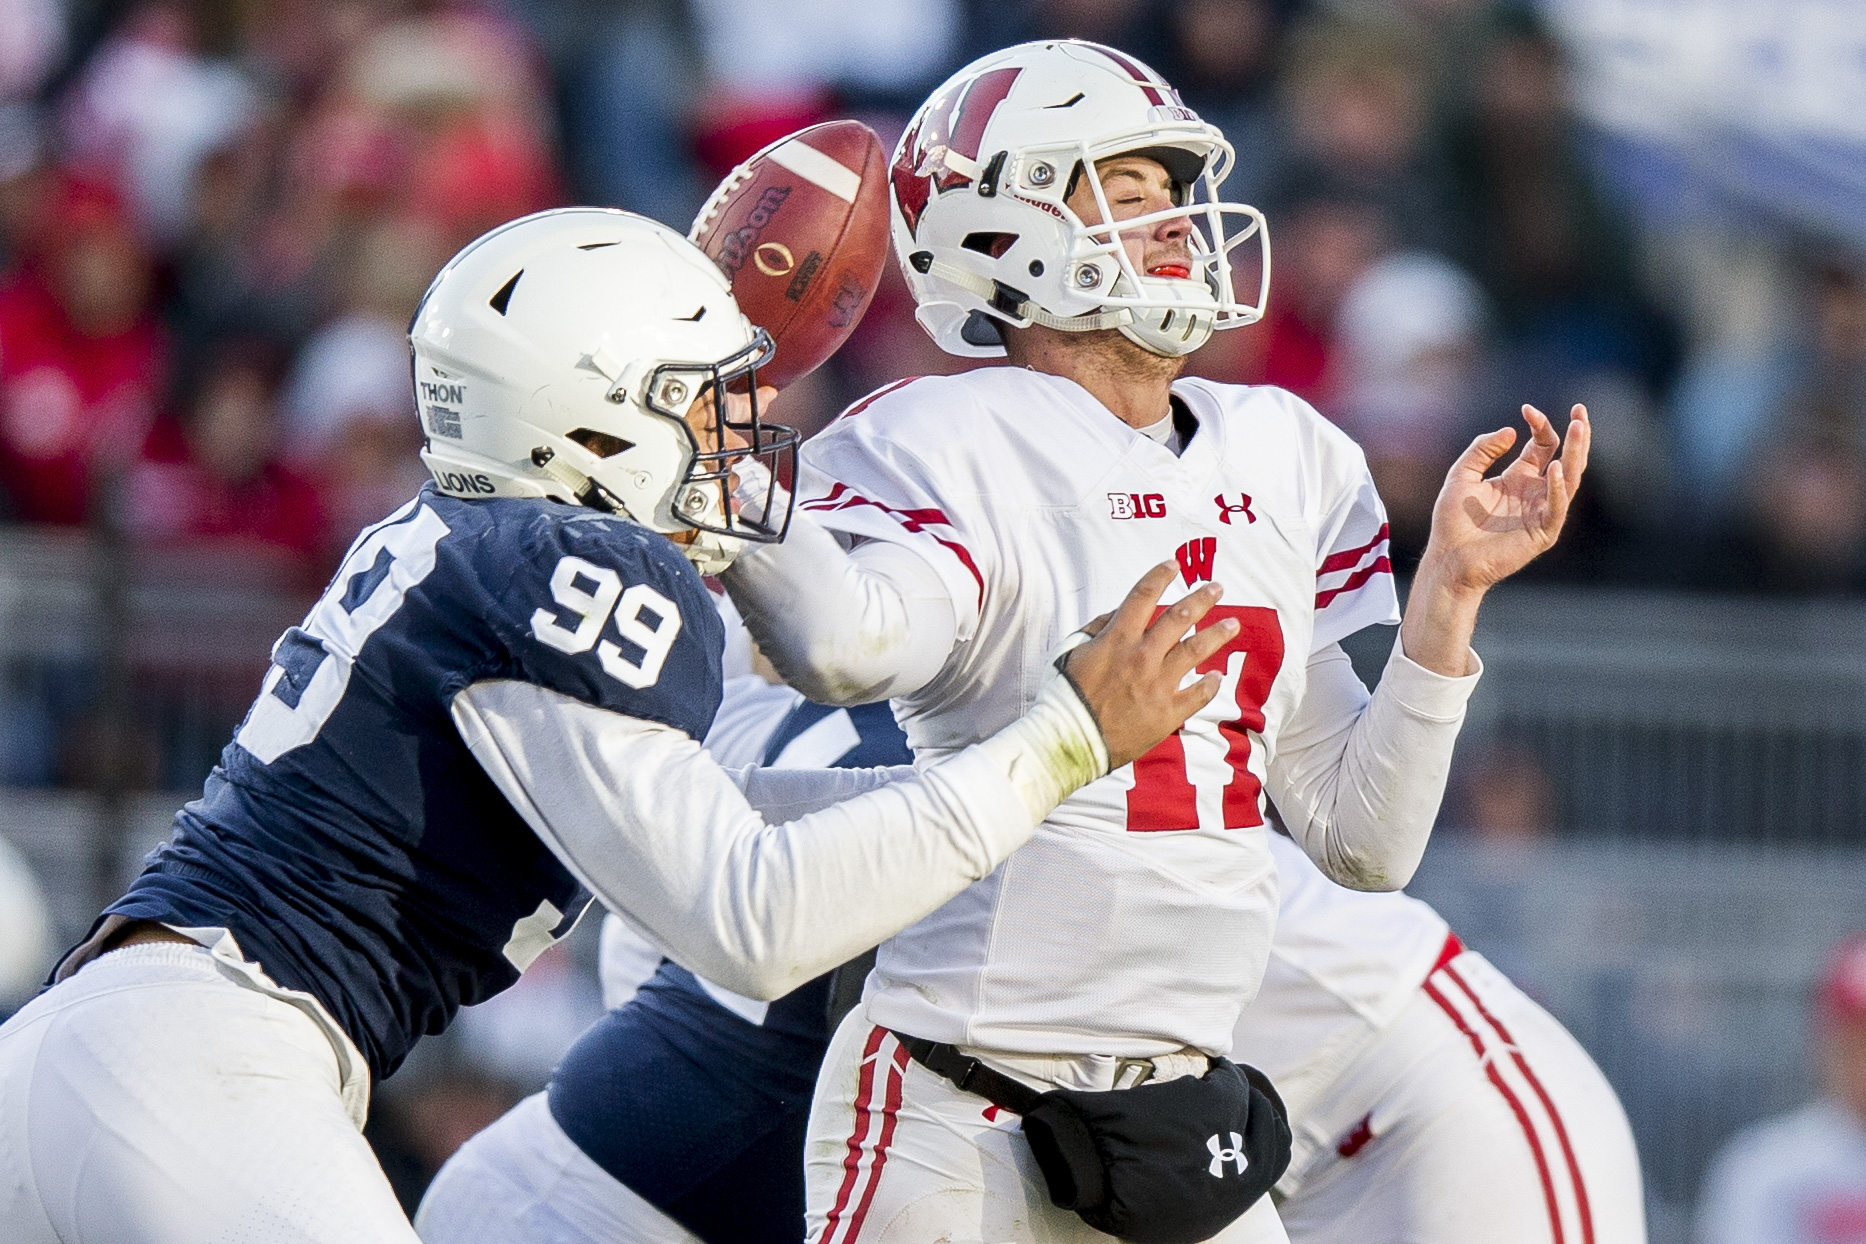 Three statistical trends that are making Penn State football history during the James Franklin era